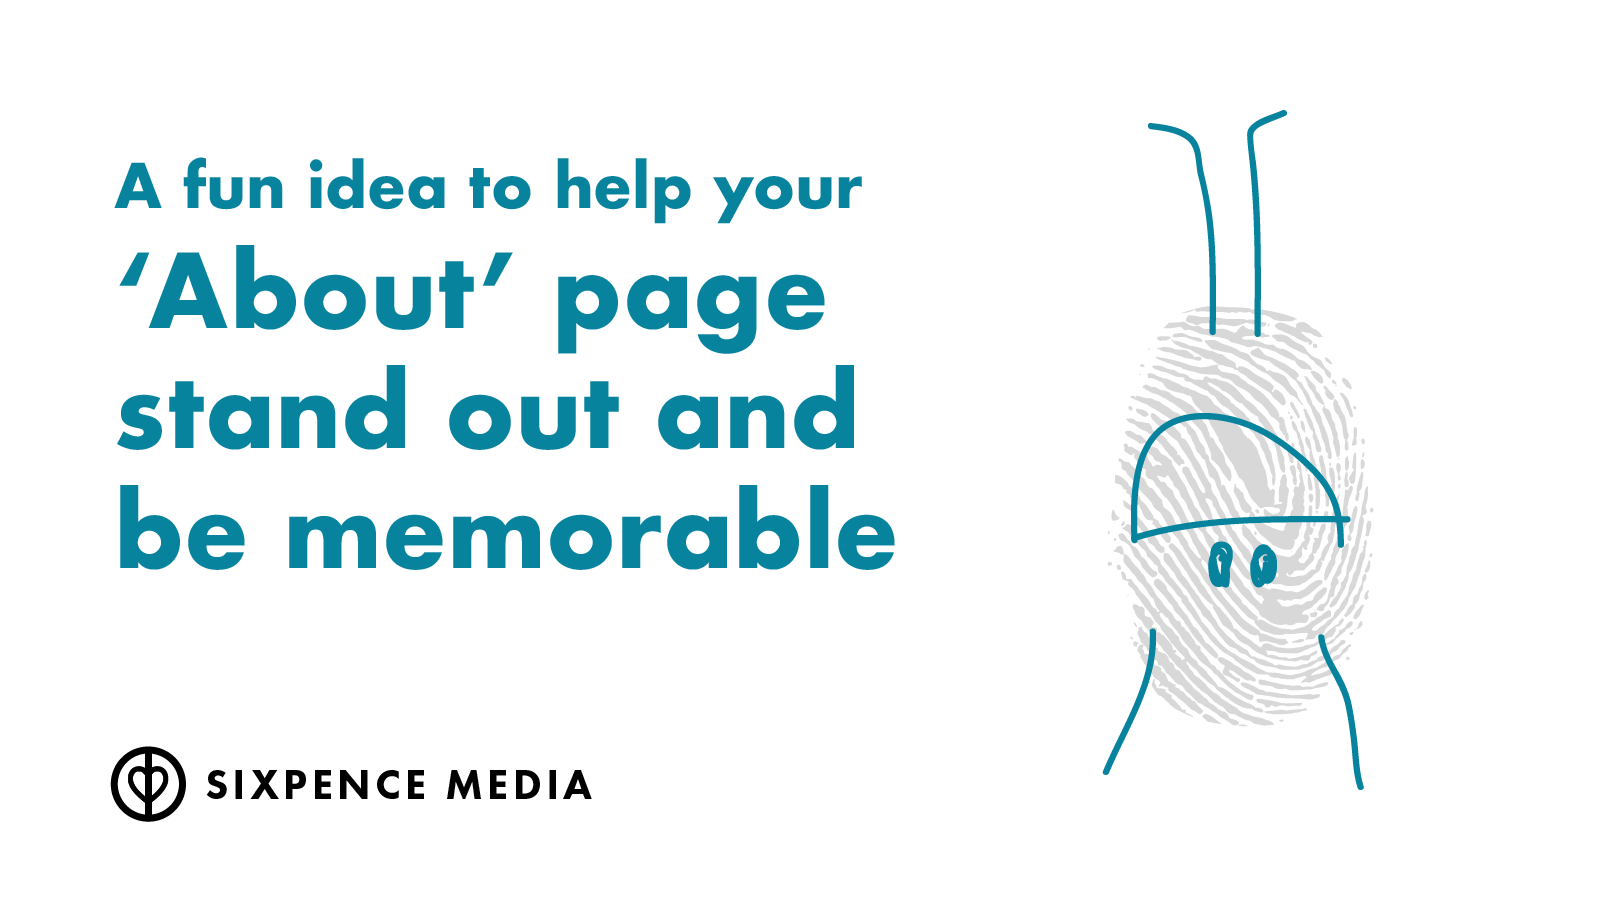 Blog---Fun-idea-for-your-ABOUT-page-v2.png